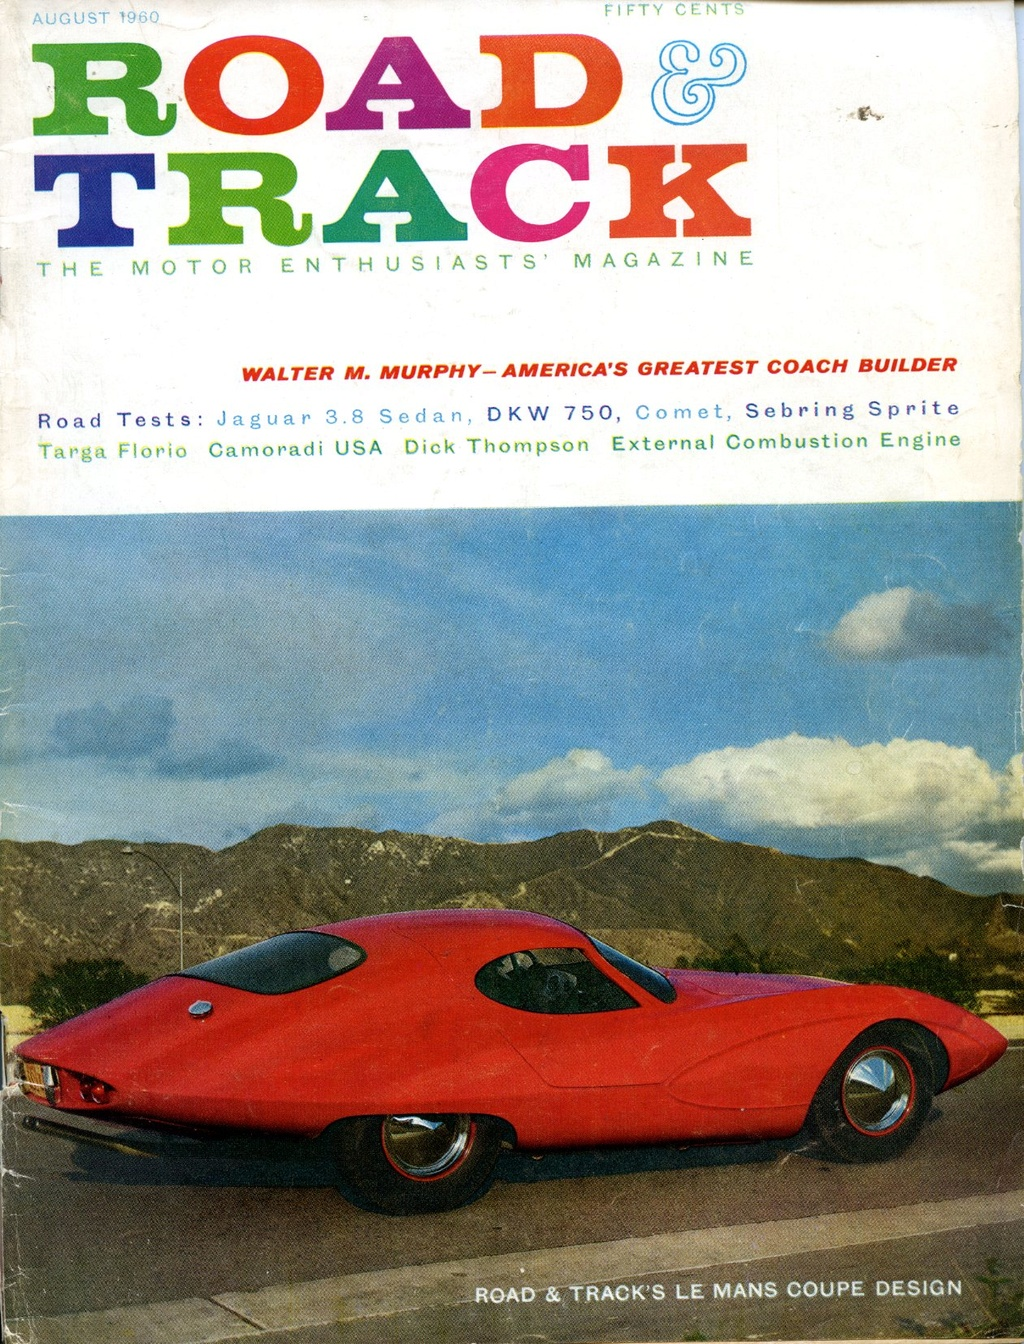 Ford Mustang Transporter par Paxton - Page 5 1-110